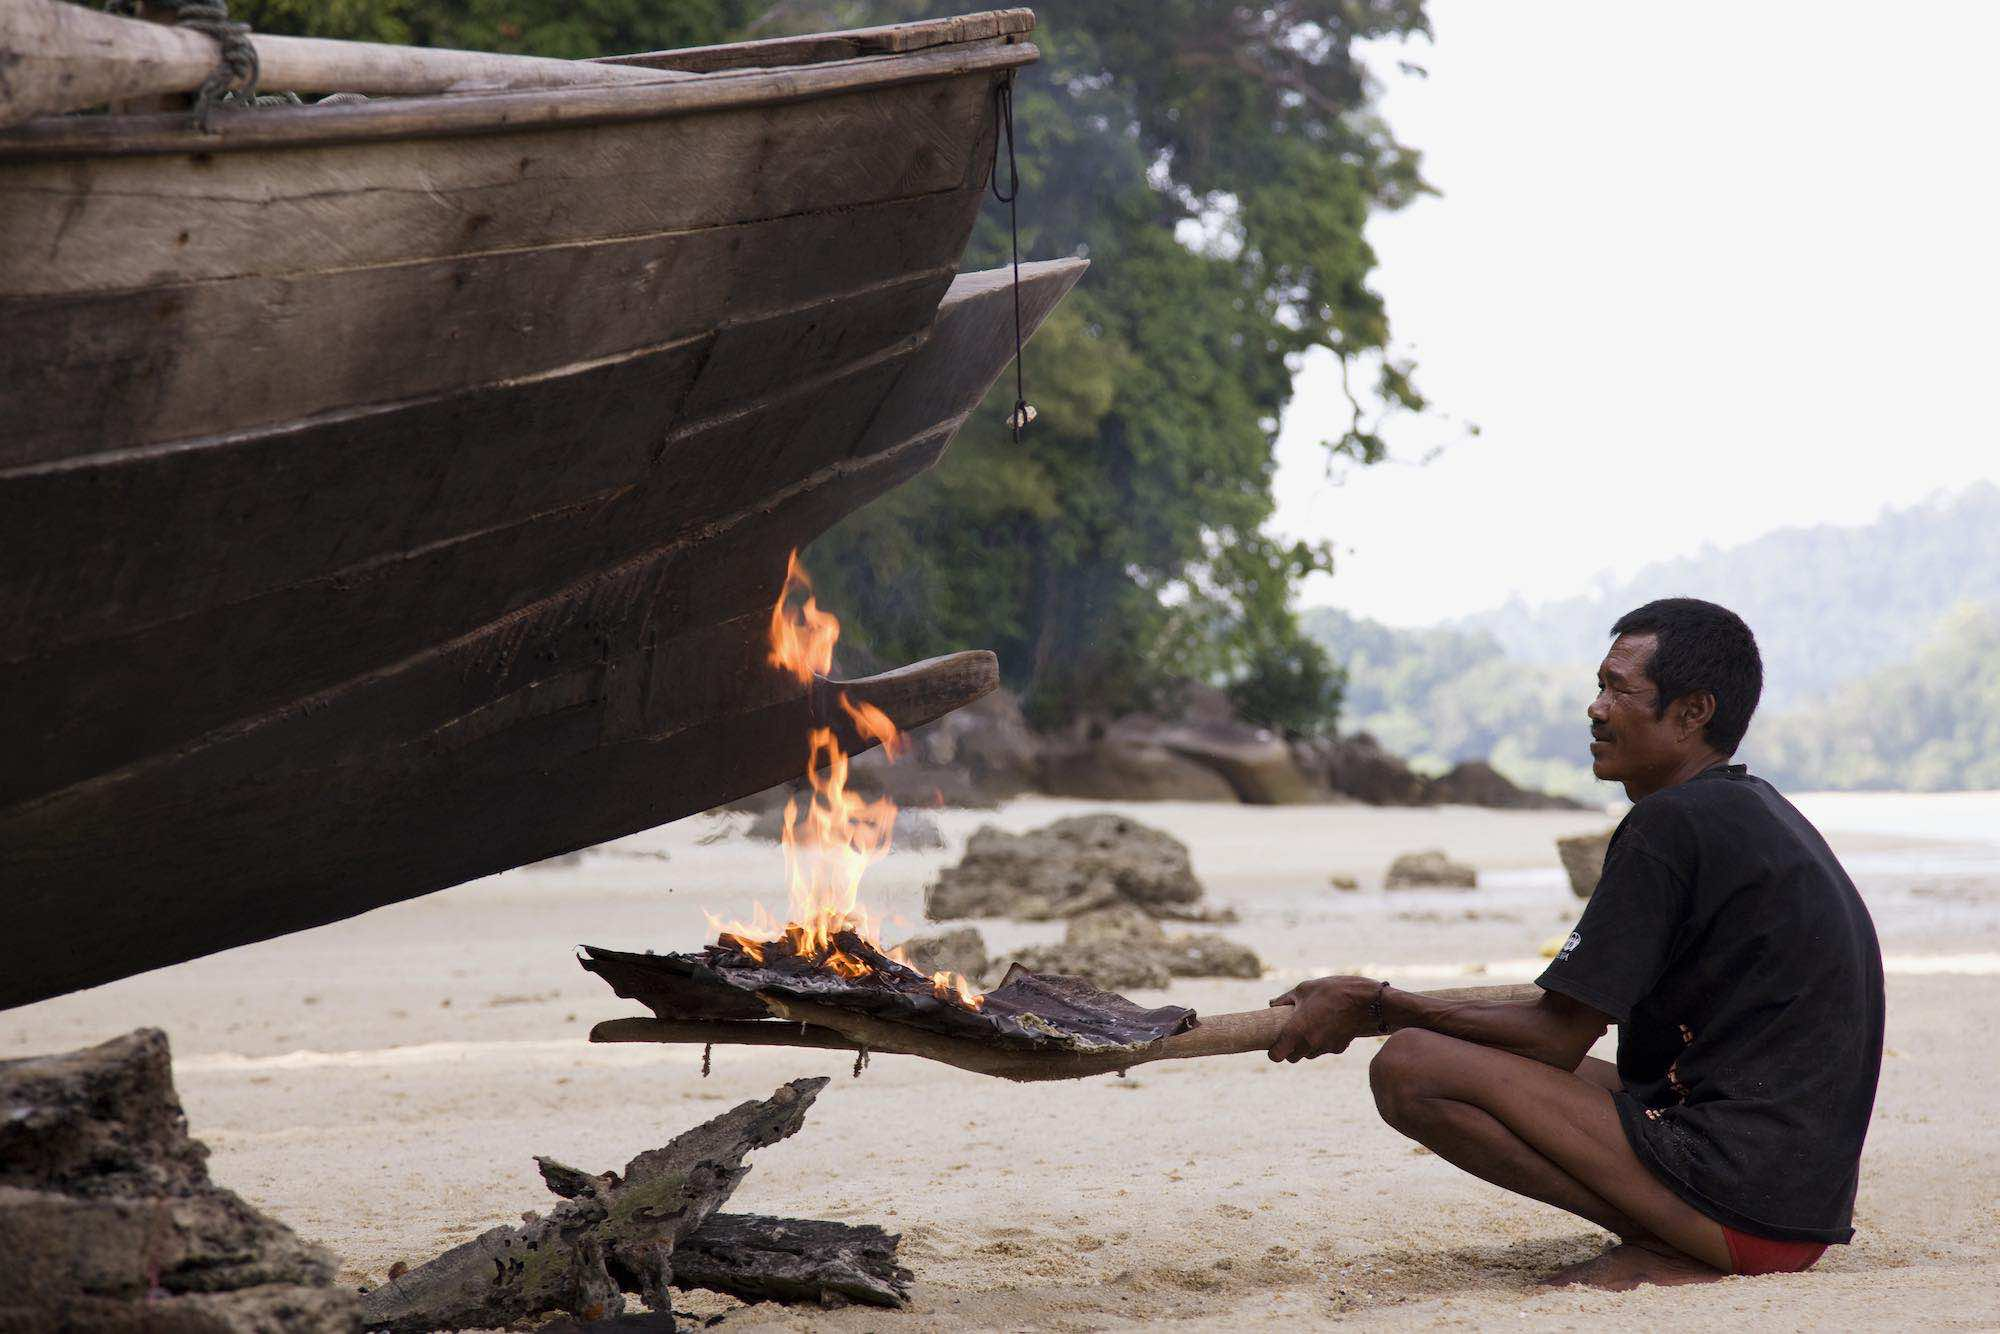 Tat burning the hull of his kabang to waterproof the boat